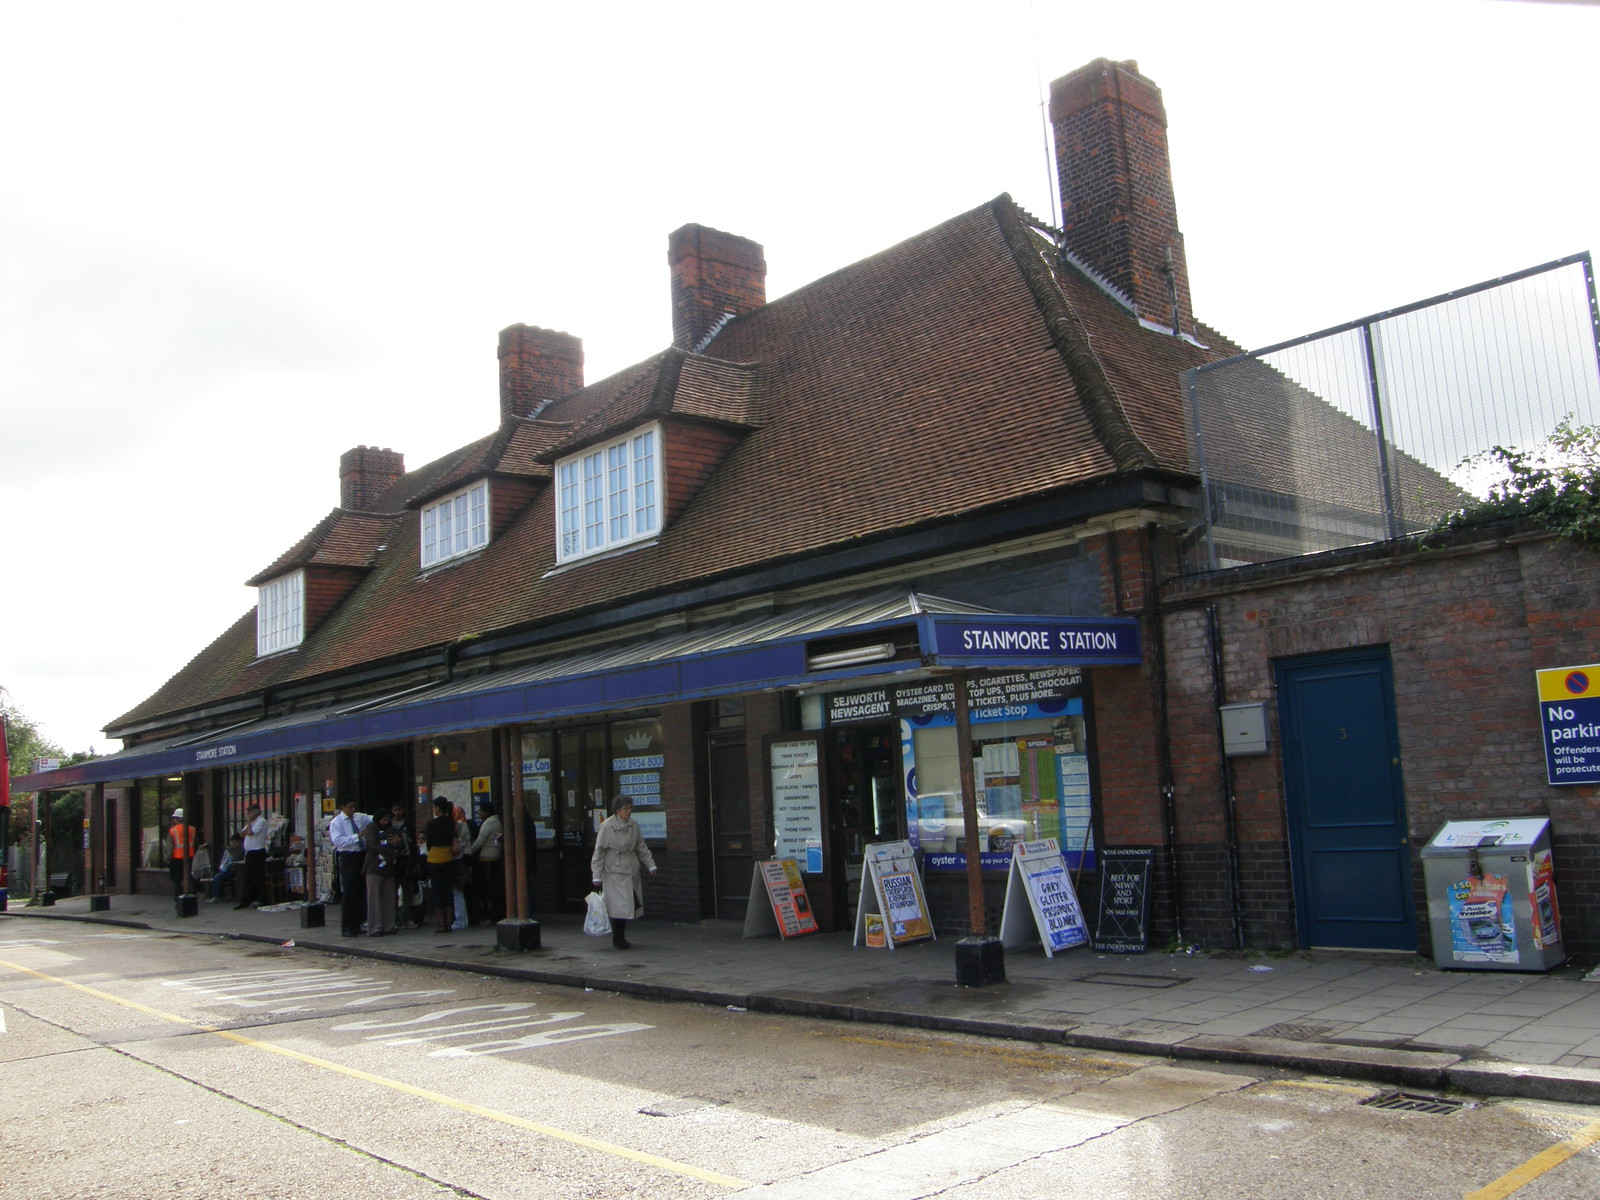 Stanmore station